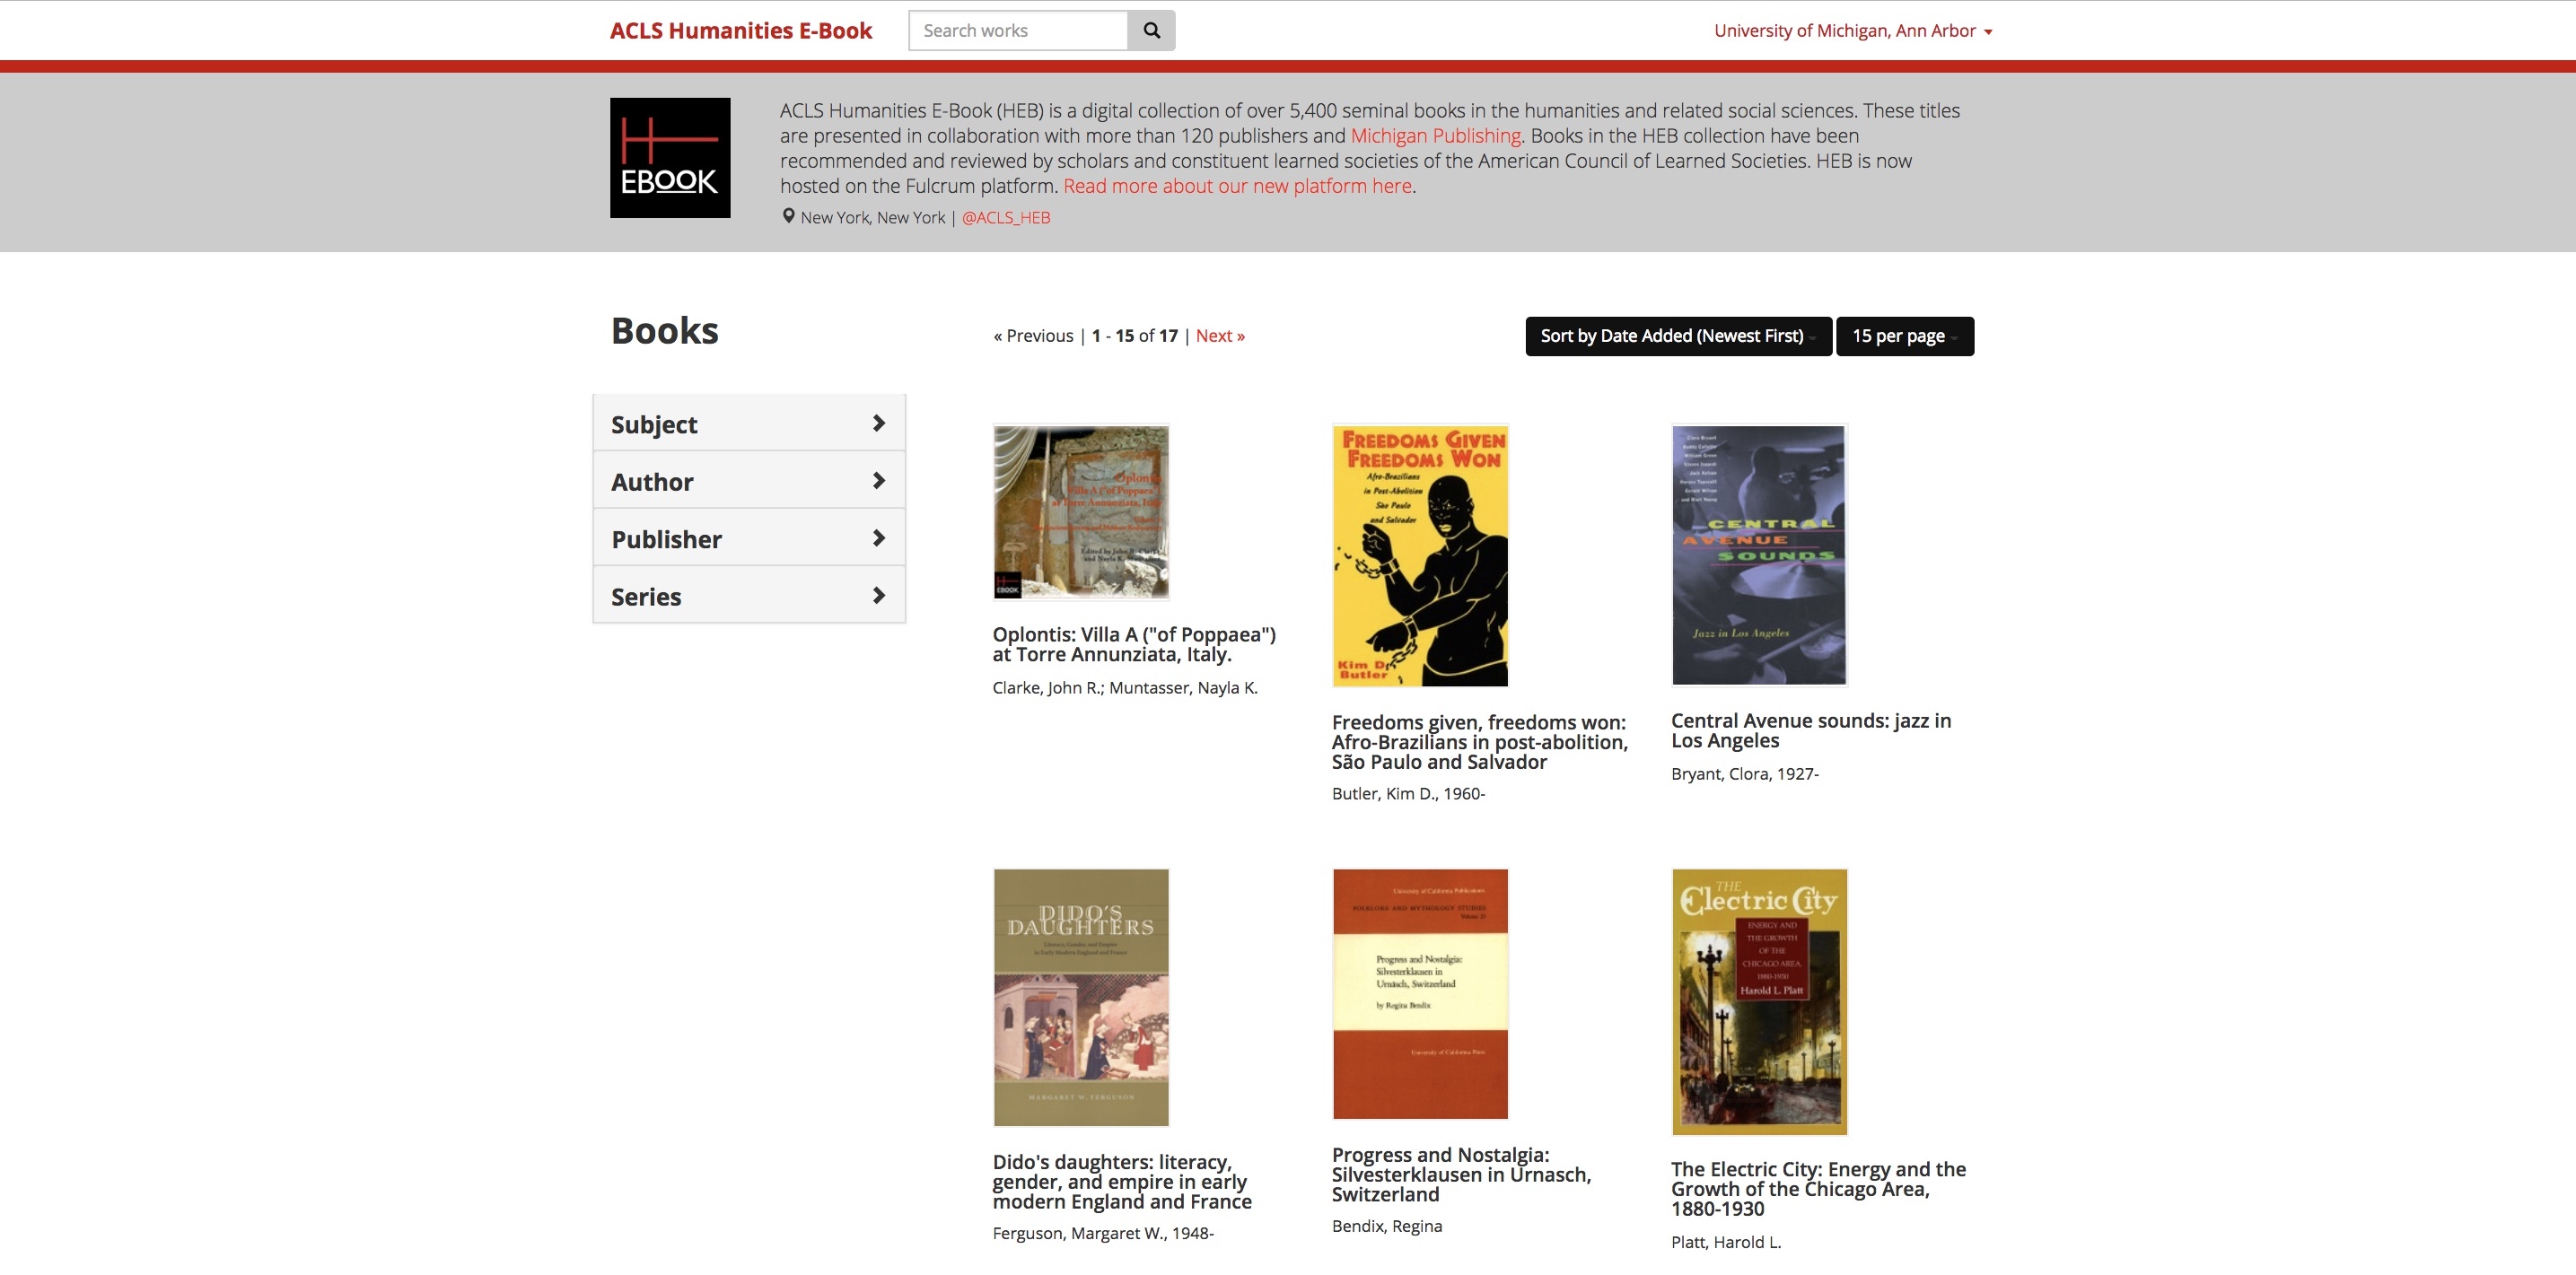 A screenshot of the updated catalog page of Humanities E-Book, displaying book covers and browse filters.